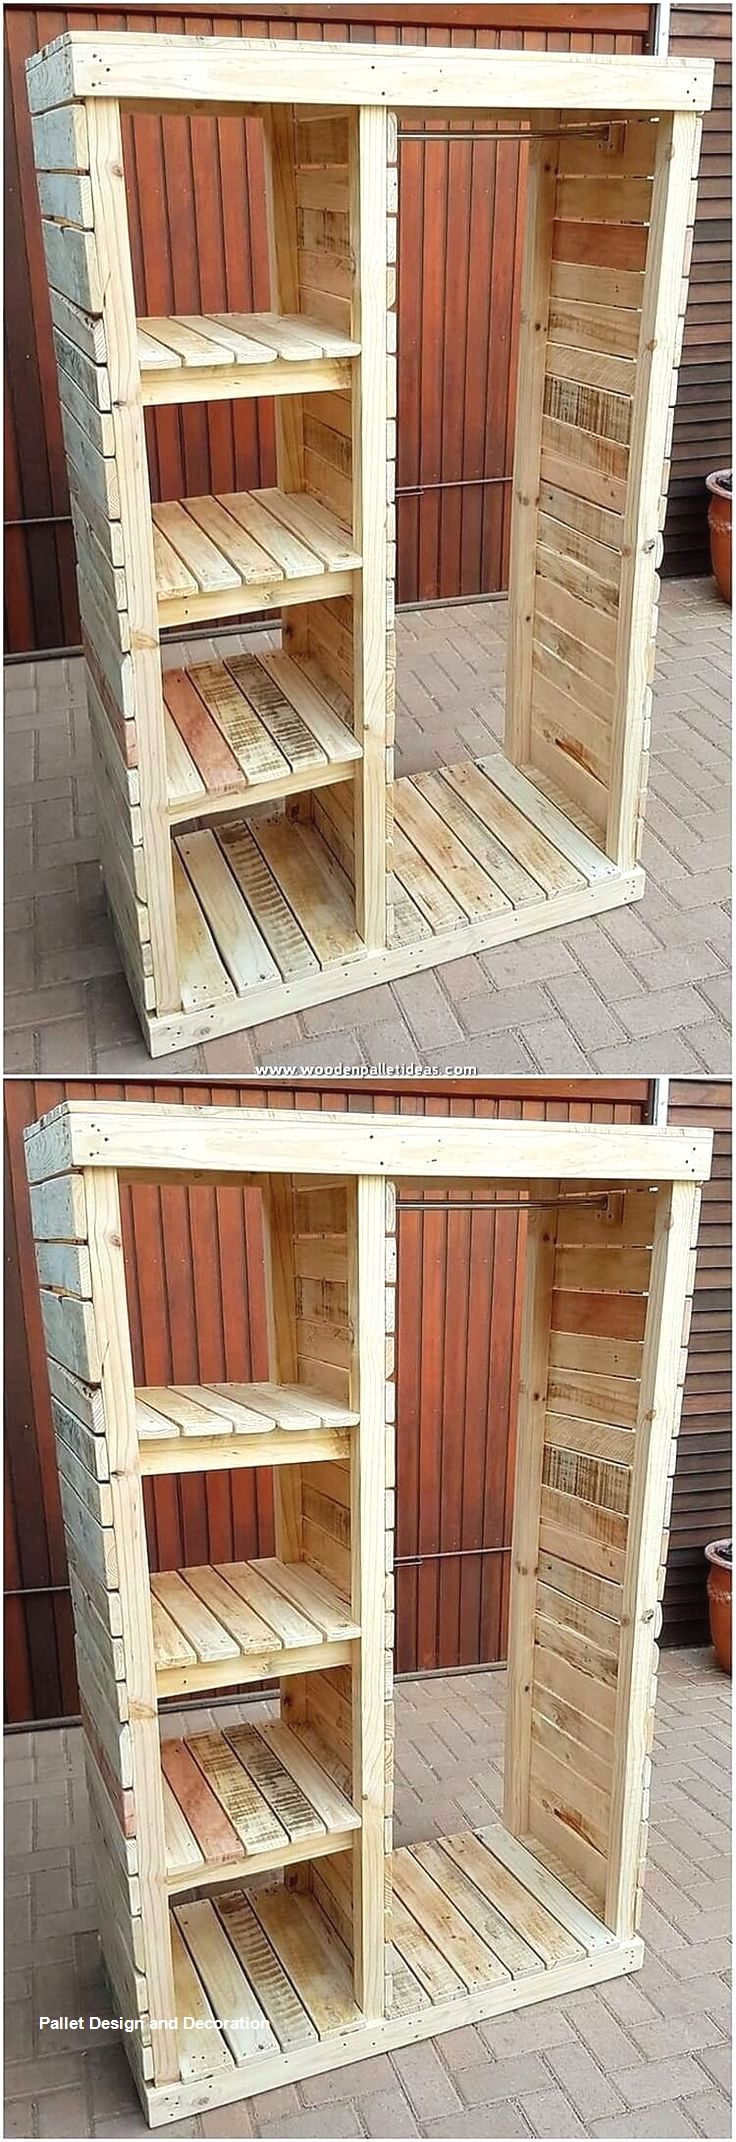 Easy and Great Diy Pallet ideas Anyone Can Do 1